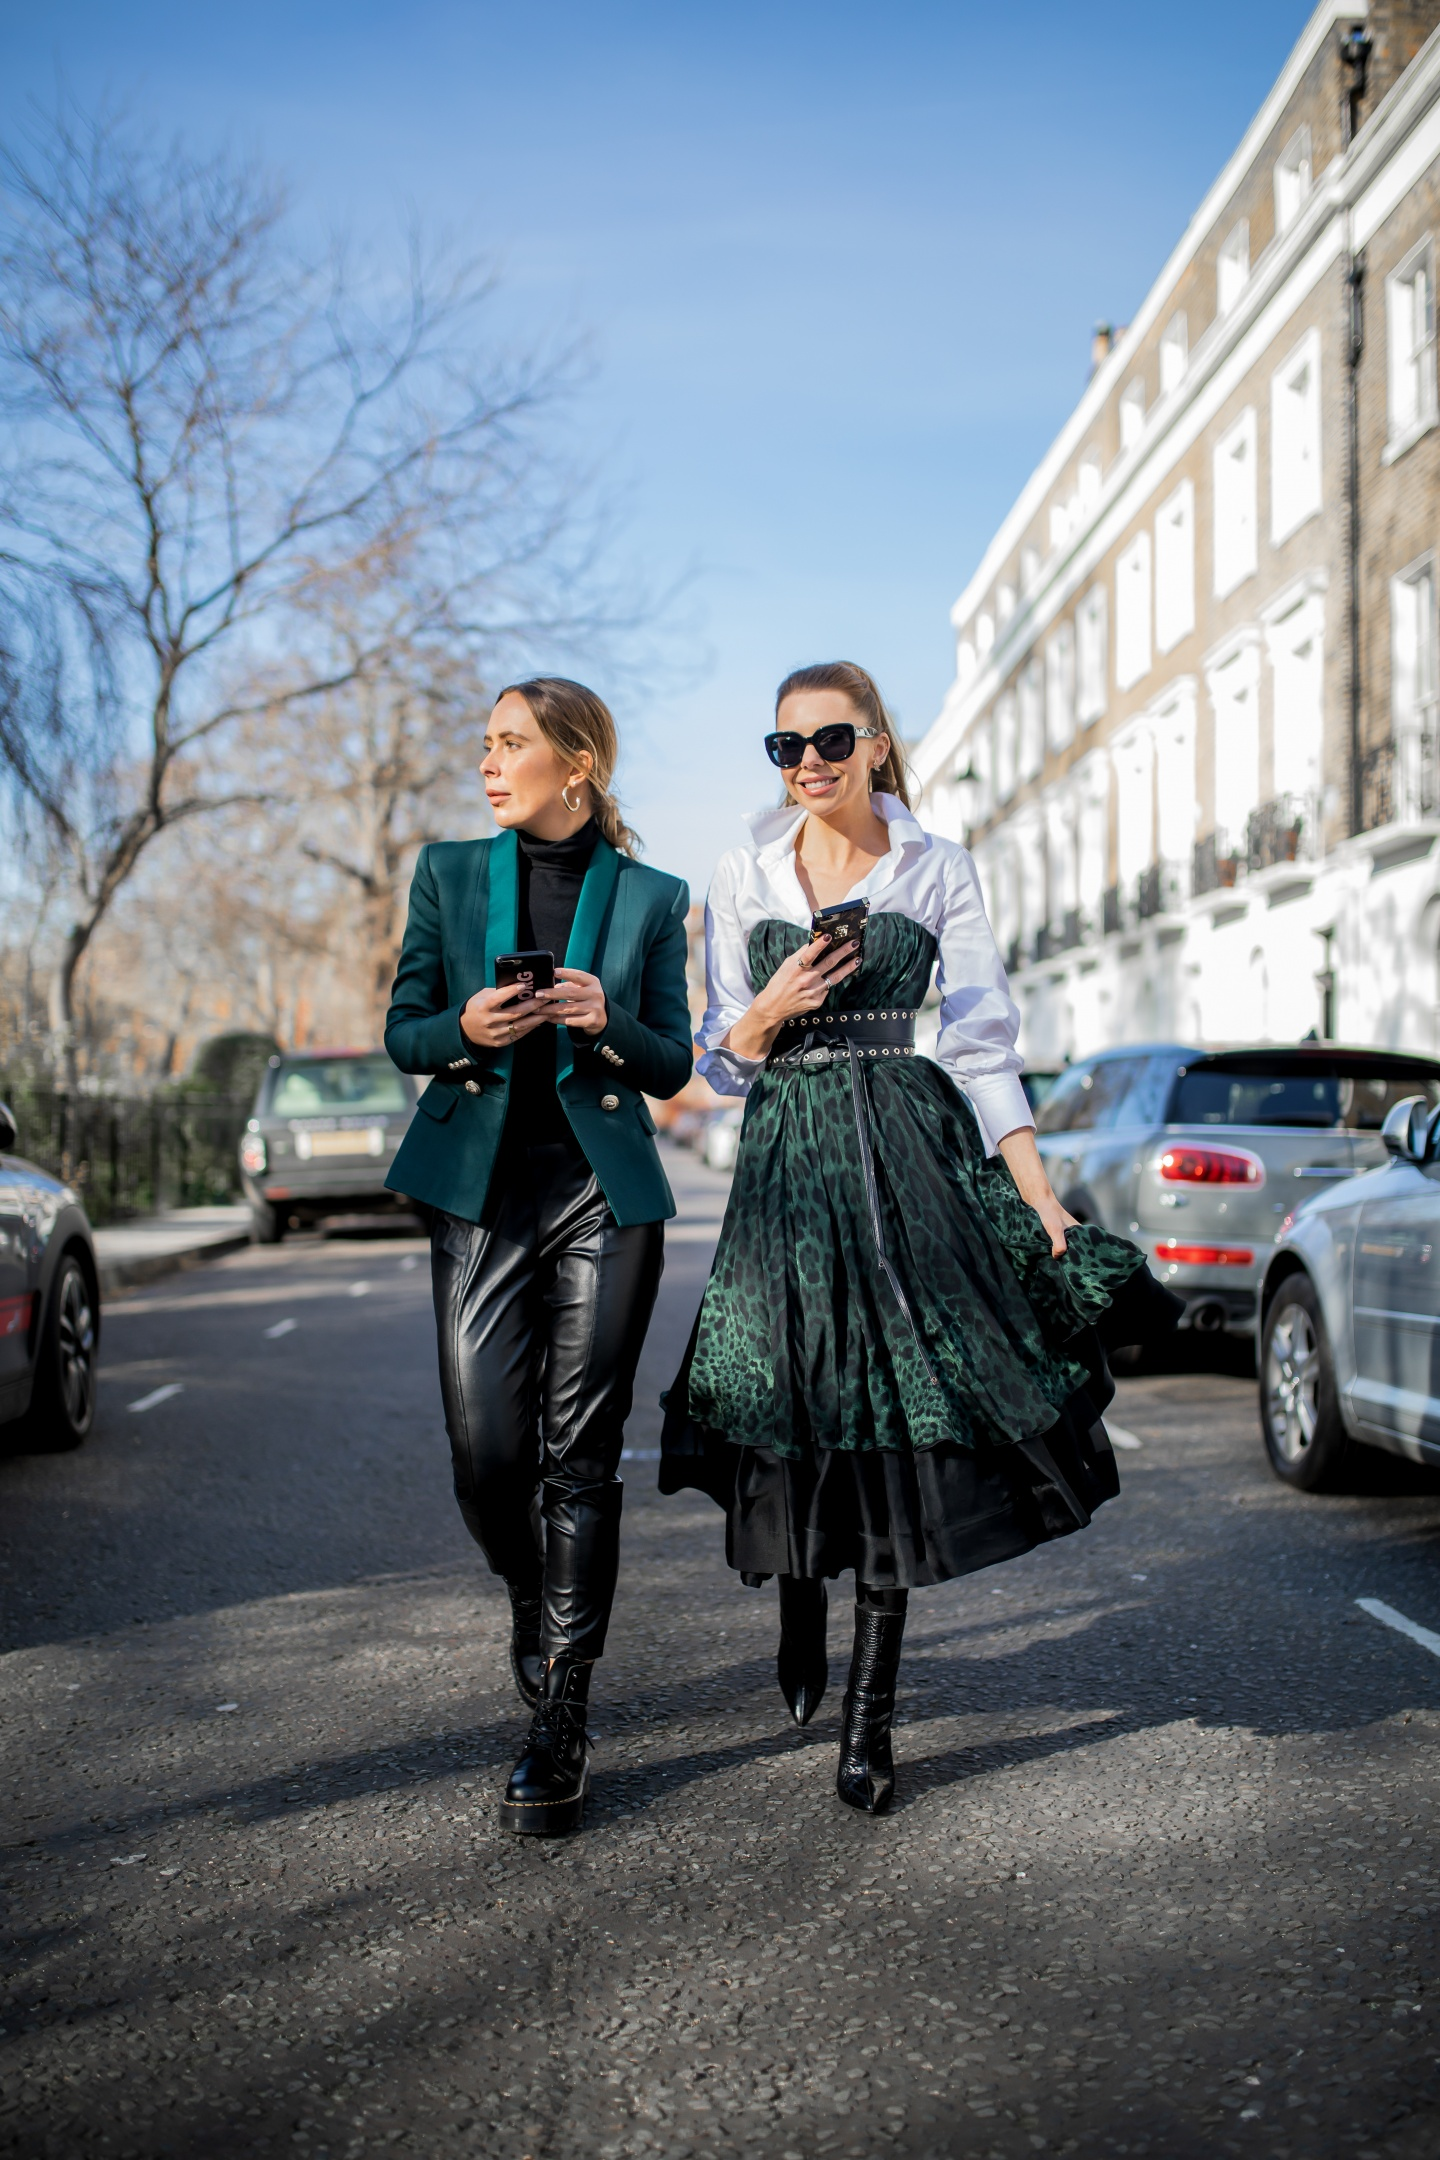 london fashion week, lfw, london fashion week street style, fashion, aw19, dolce & gabbana, prada , designer exchange, we buy designer